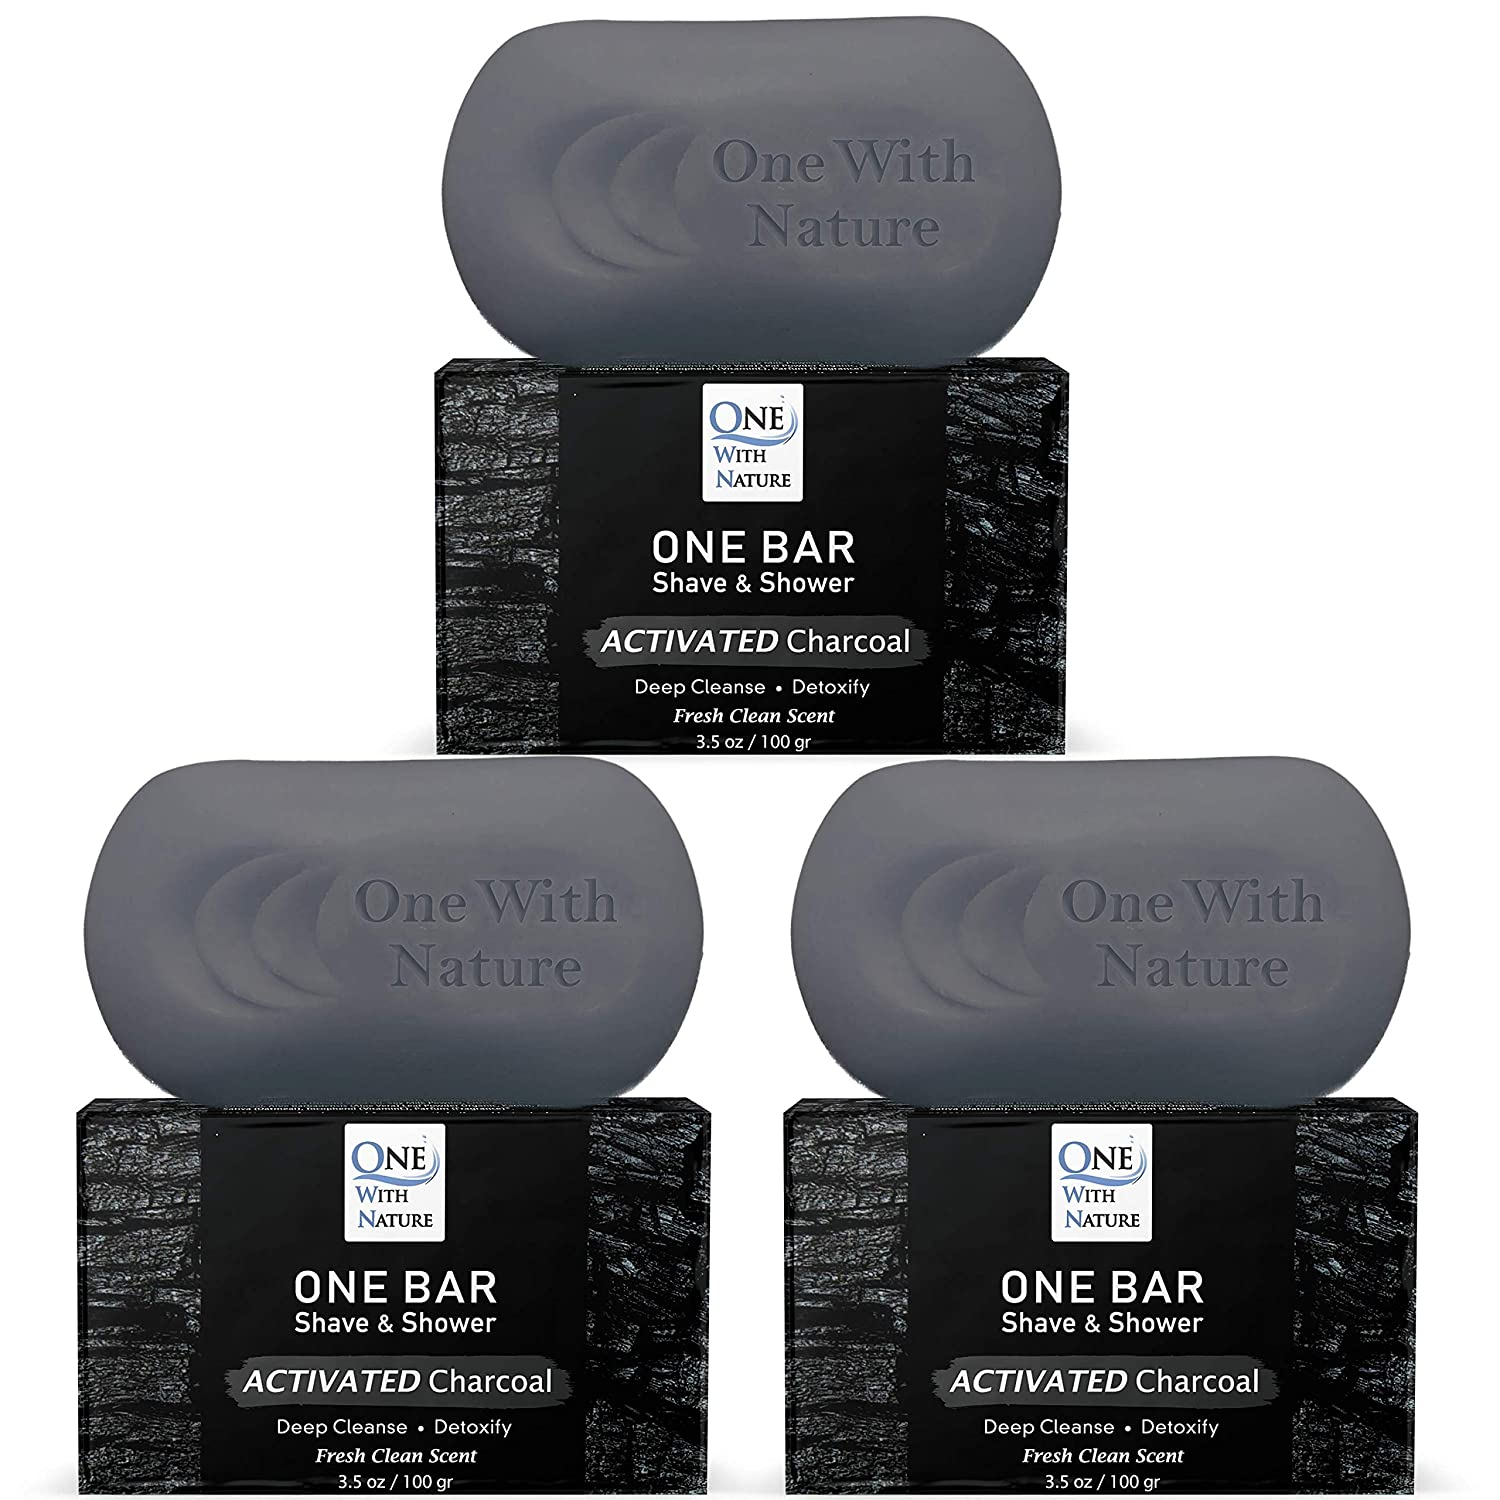 ONE Bar San Jose Mall Activated Charcoal 3 Pack Shave - Shower Regular store face Shampoo